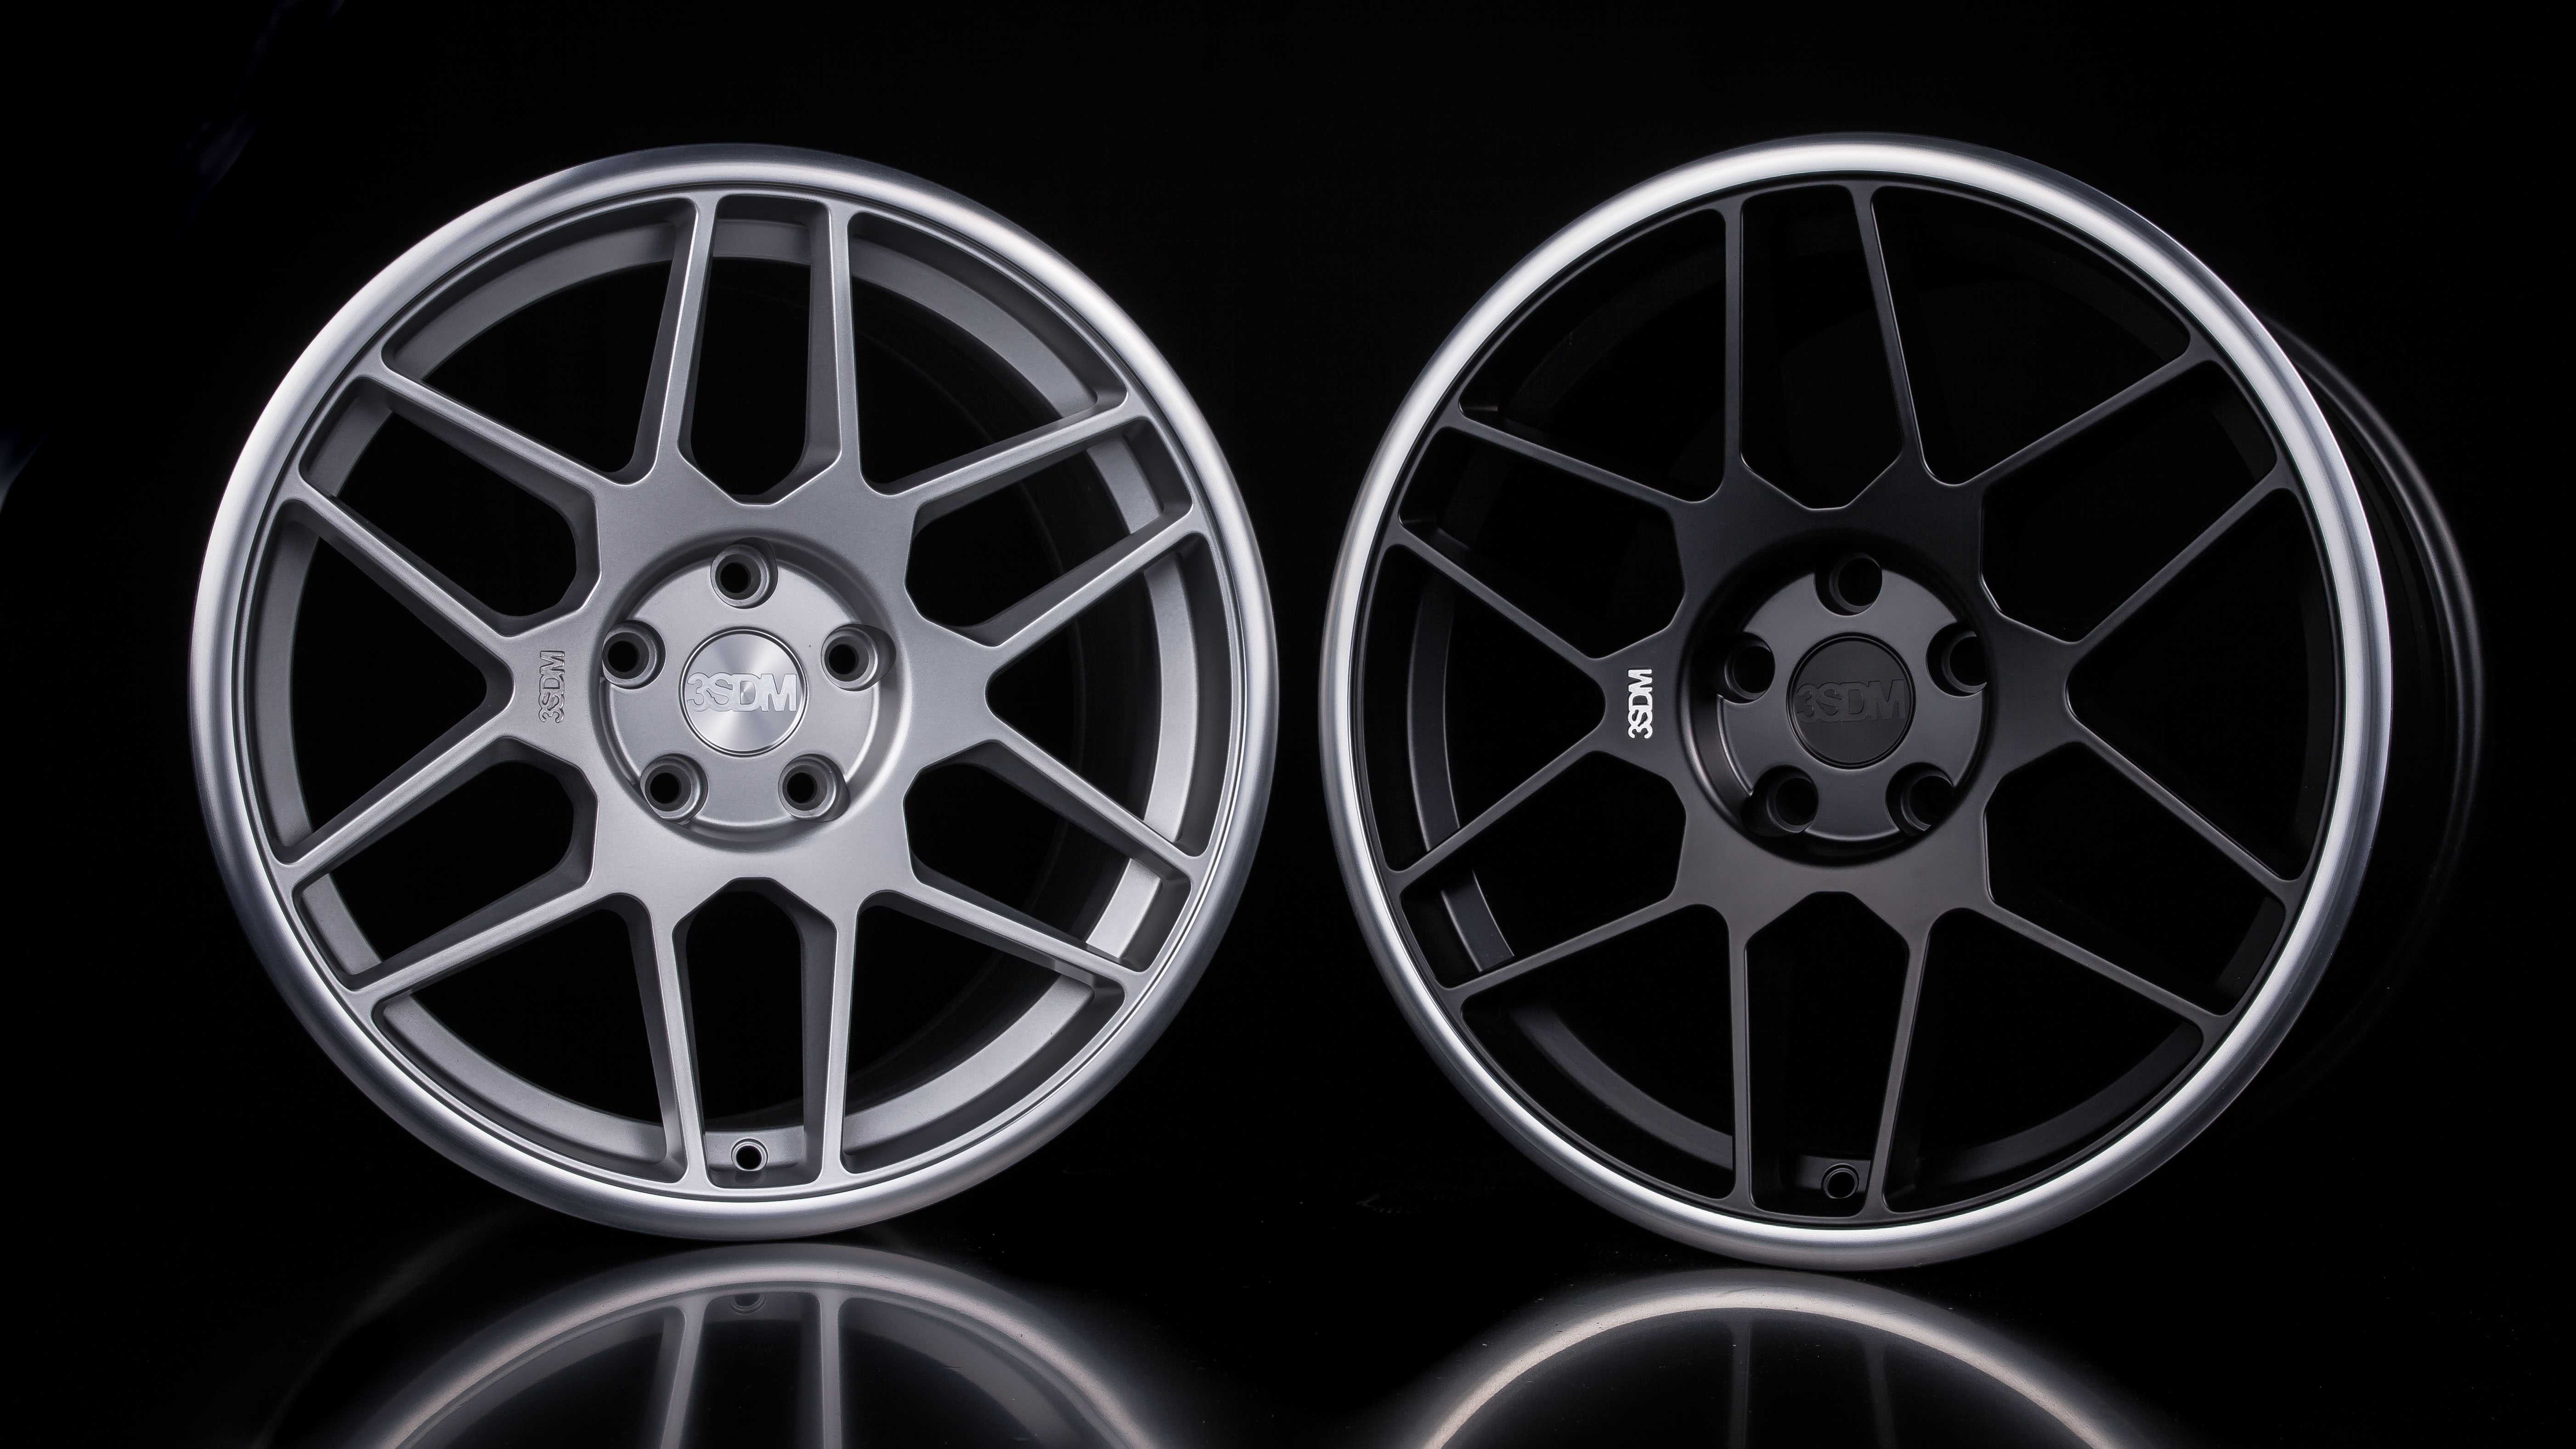 Cast and spin forged alloy wheels